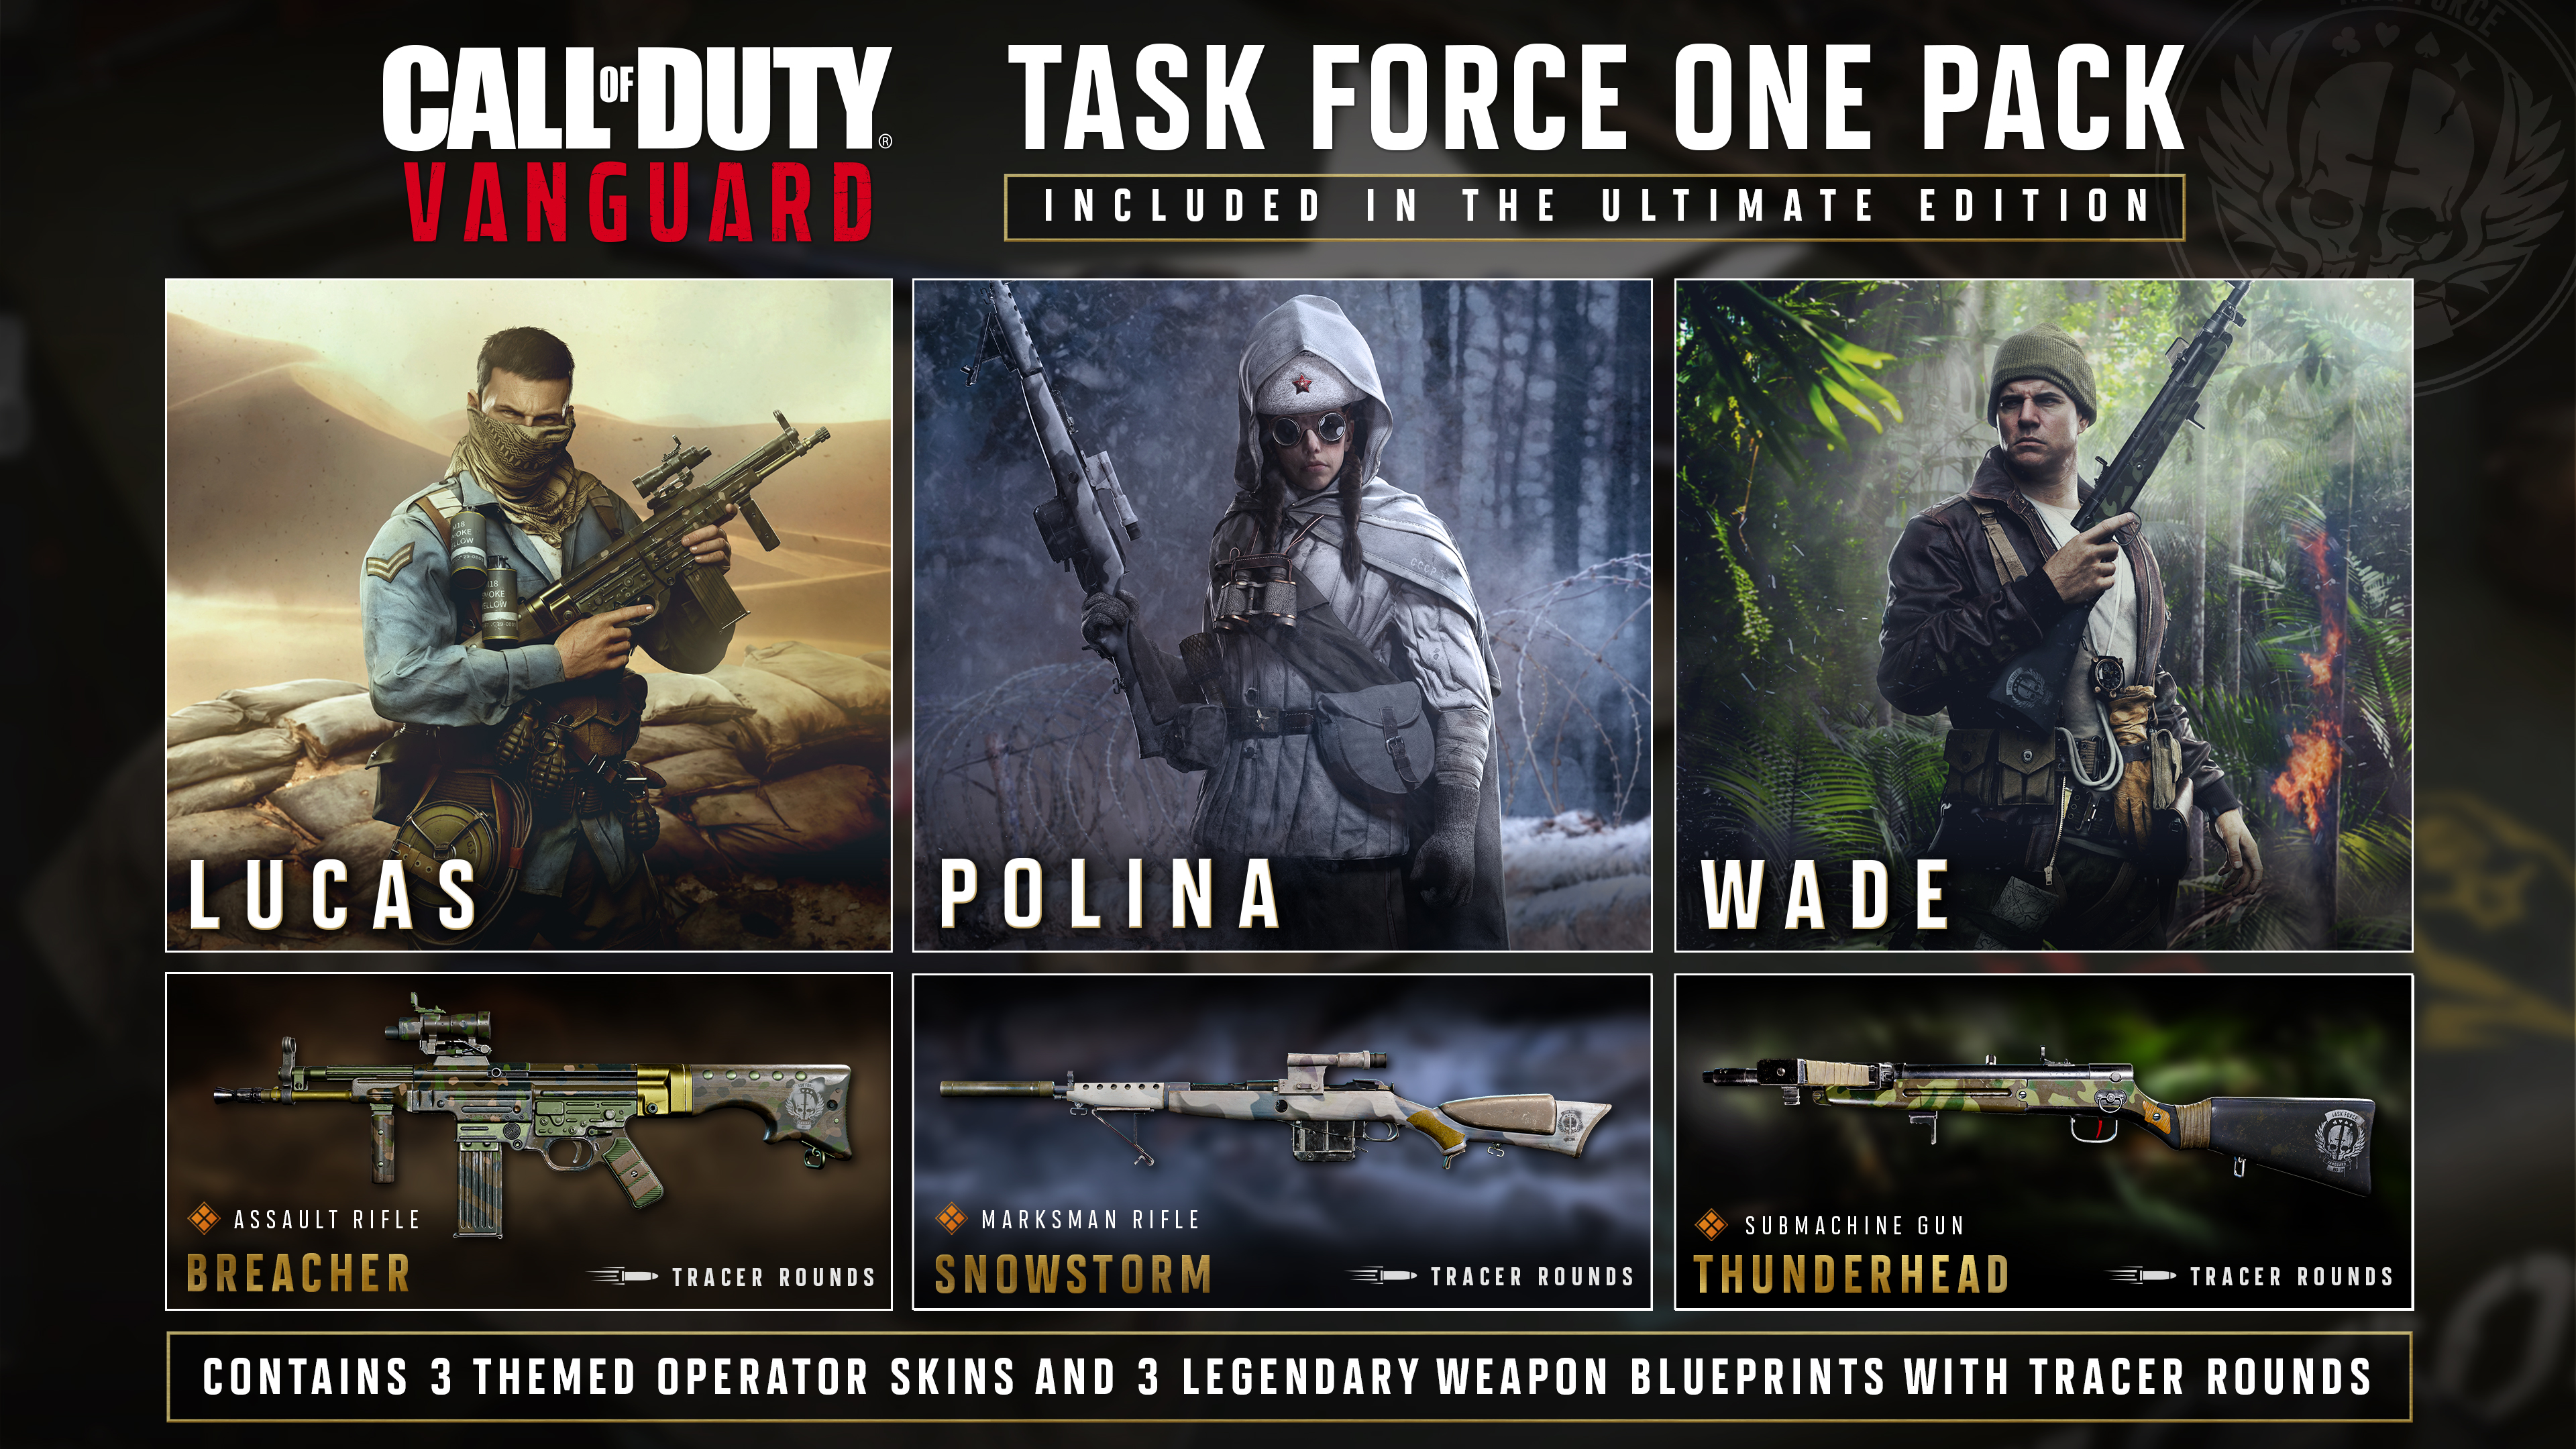 Introducing the Task Force One Pack. Containing 3 operator skins & 3 legendary weapon blueprints with tracer rounds. Available in the #Vanguard Ultimate Edition.